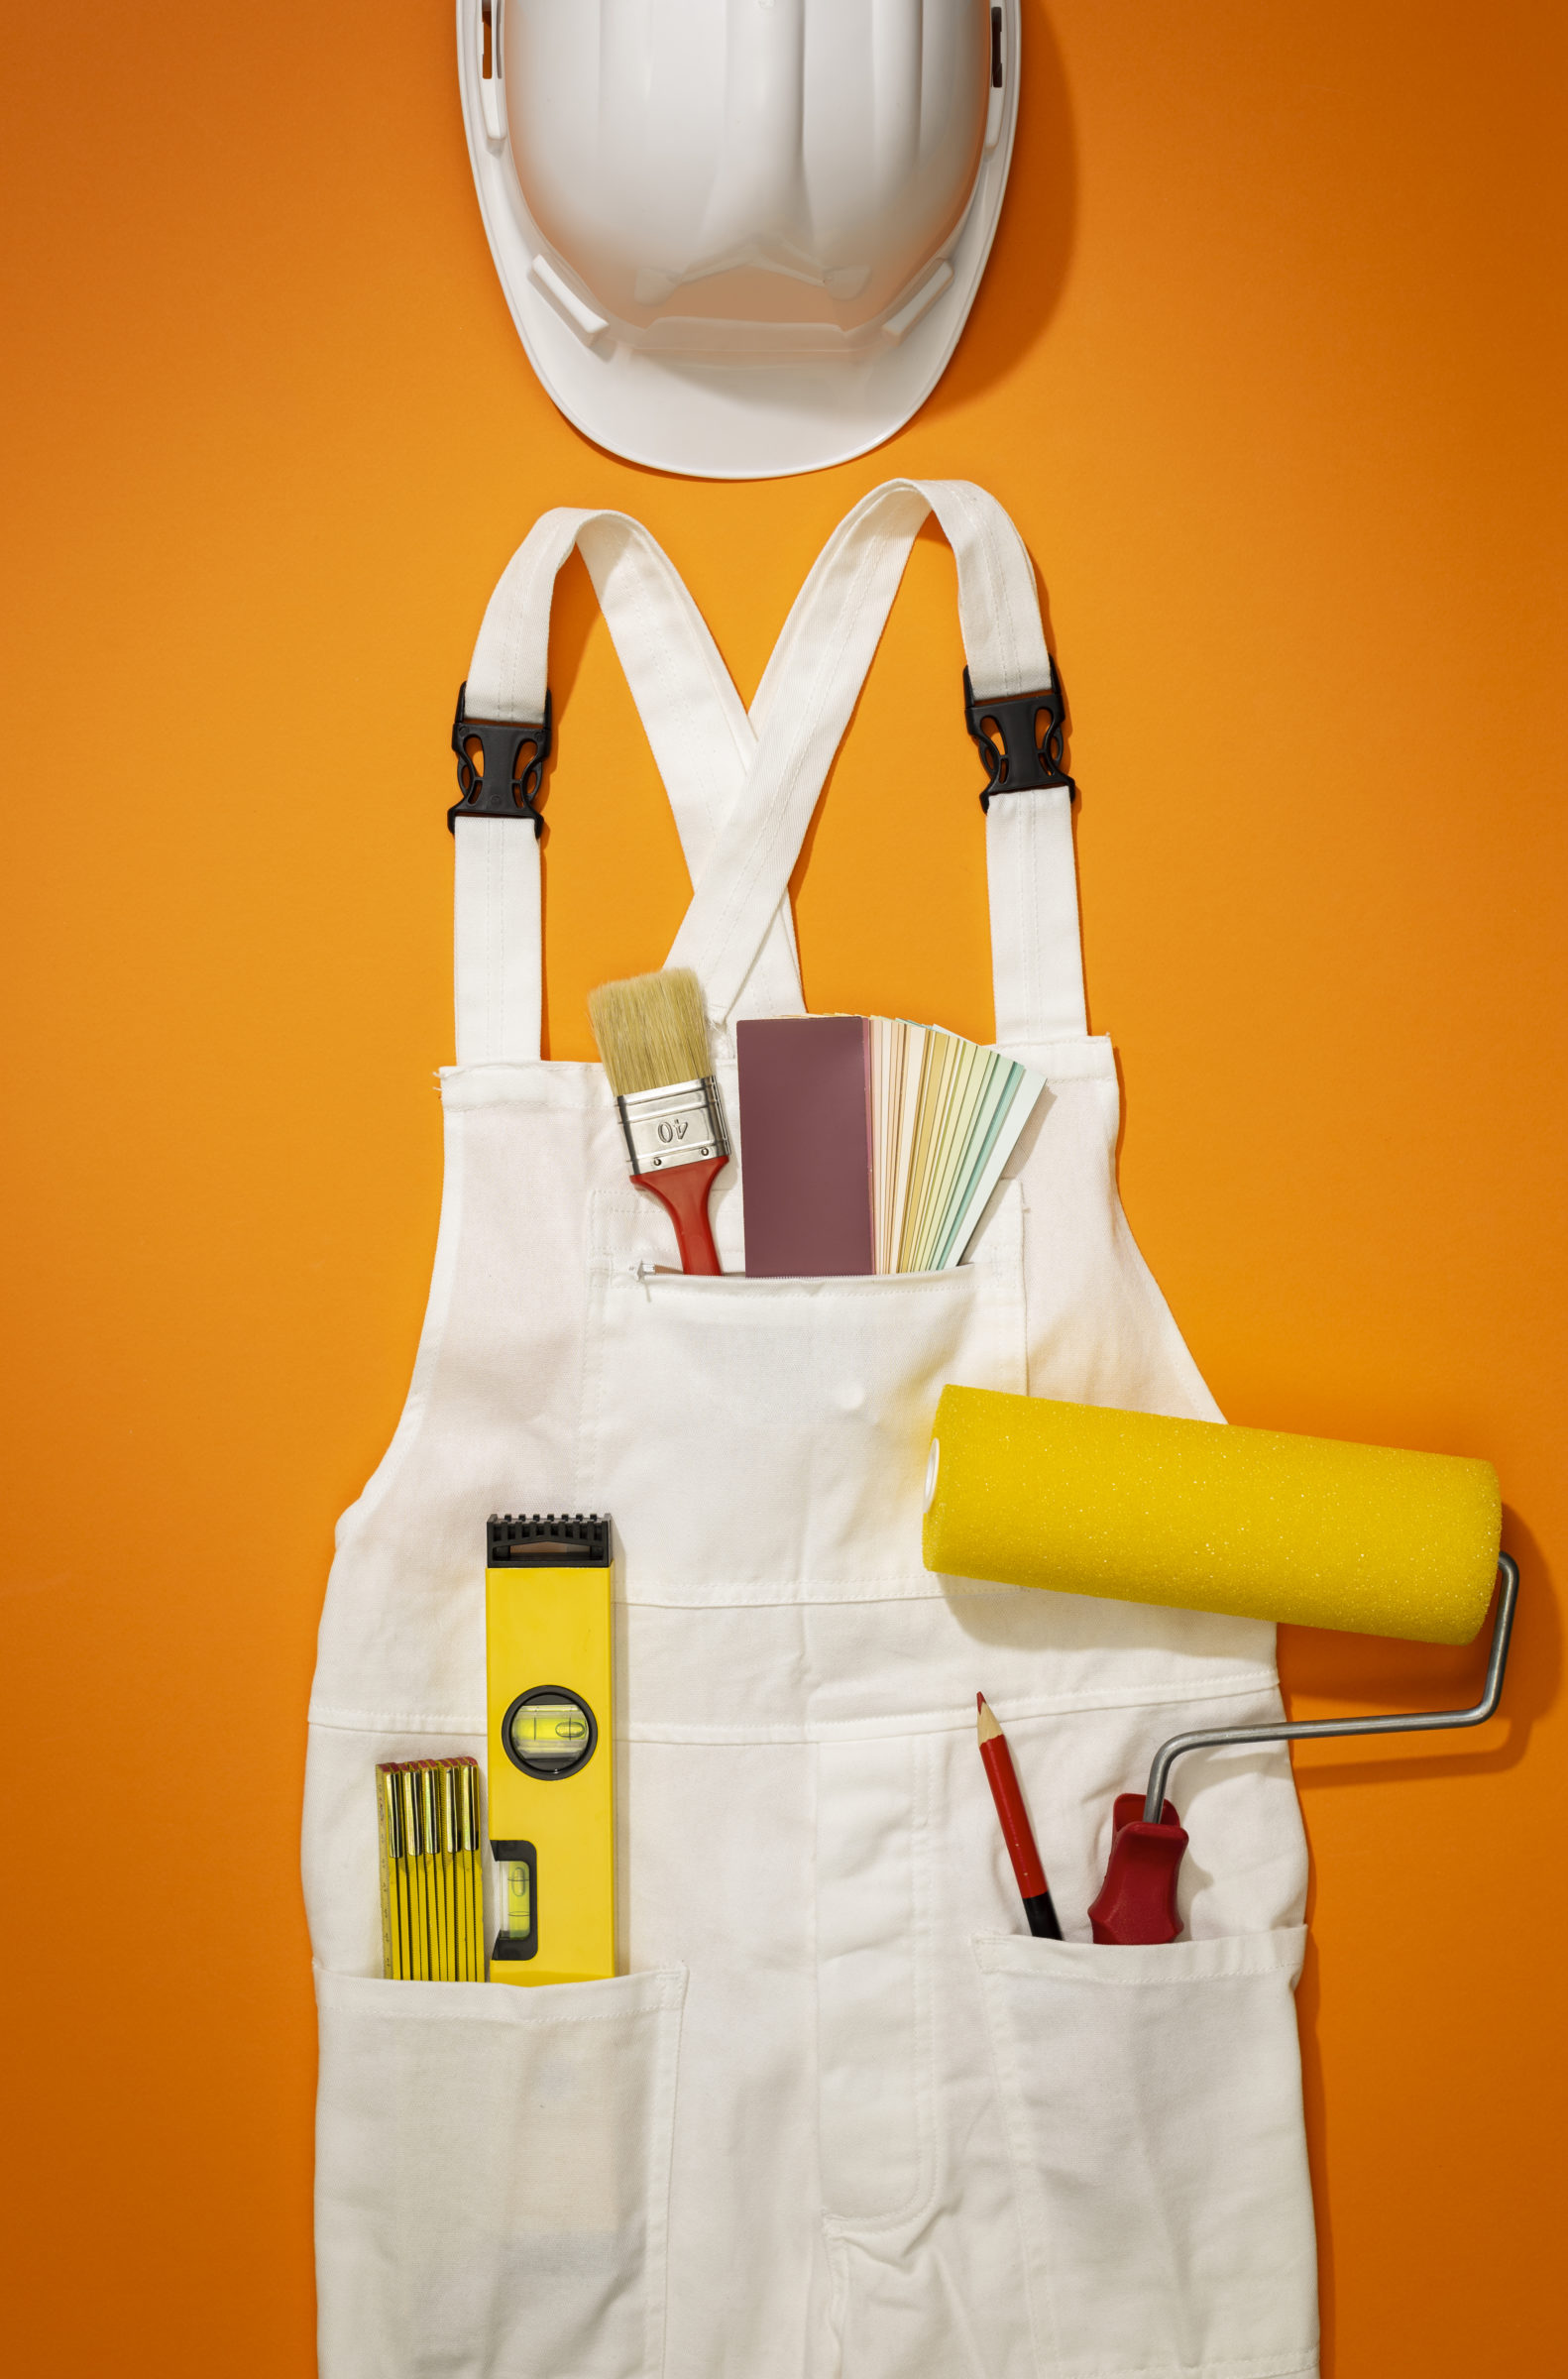 painter and decorator work uniform with tools UPFS8G3